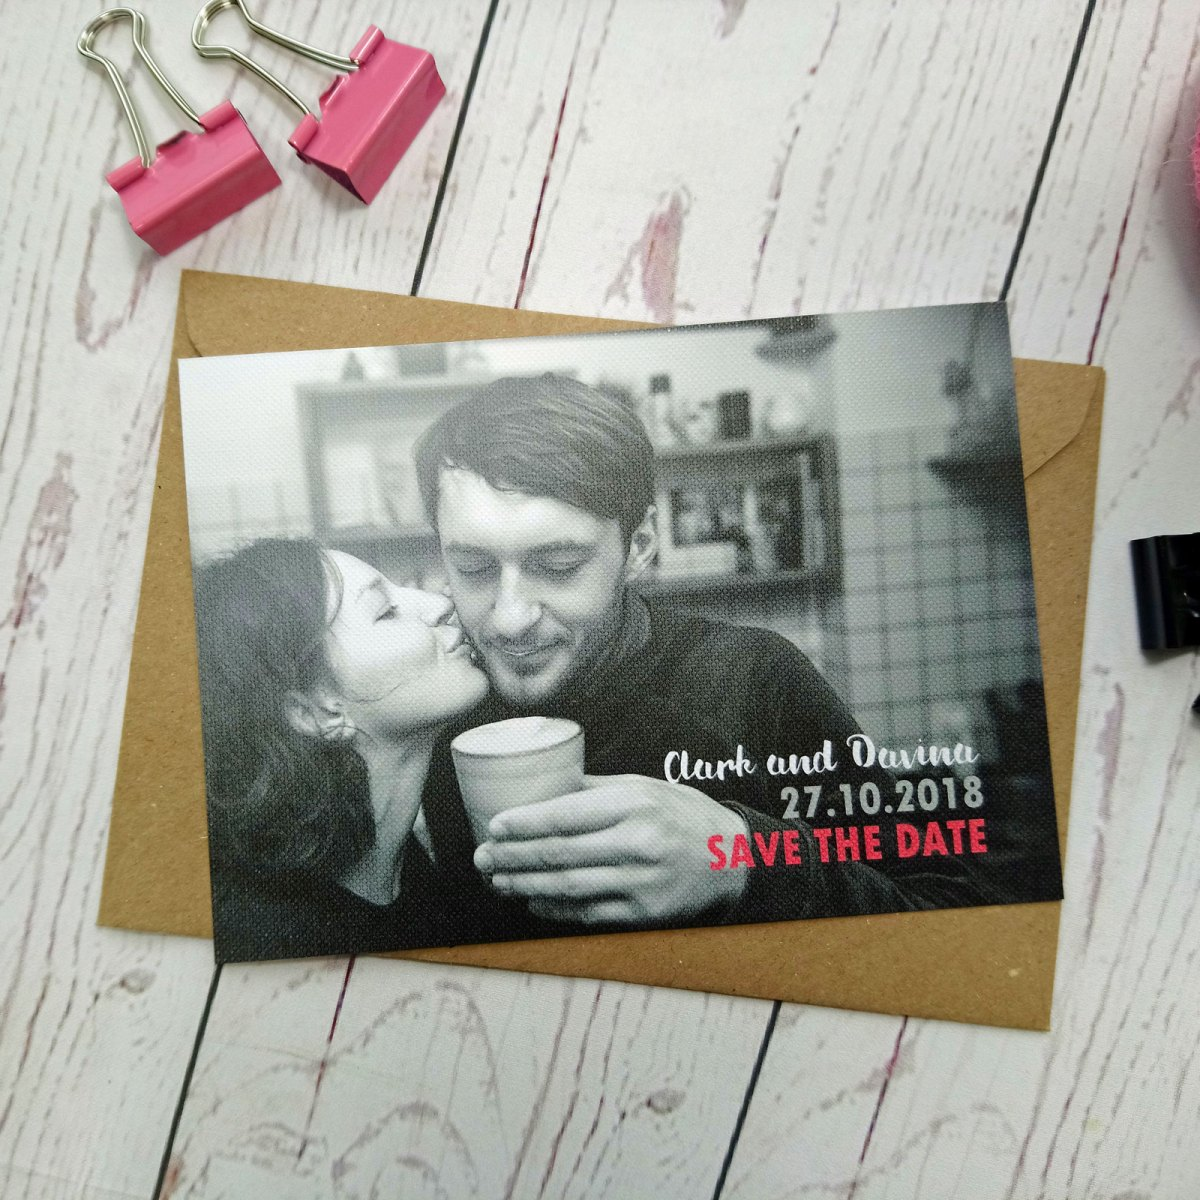 Black and White picture of the bride and groom cuddling. Boy Meets Girl Save The Date. Full picture on white textured card.